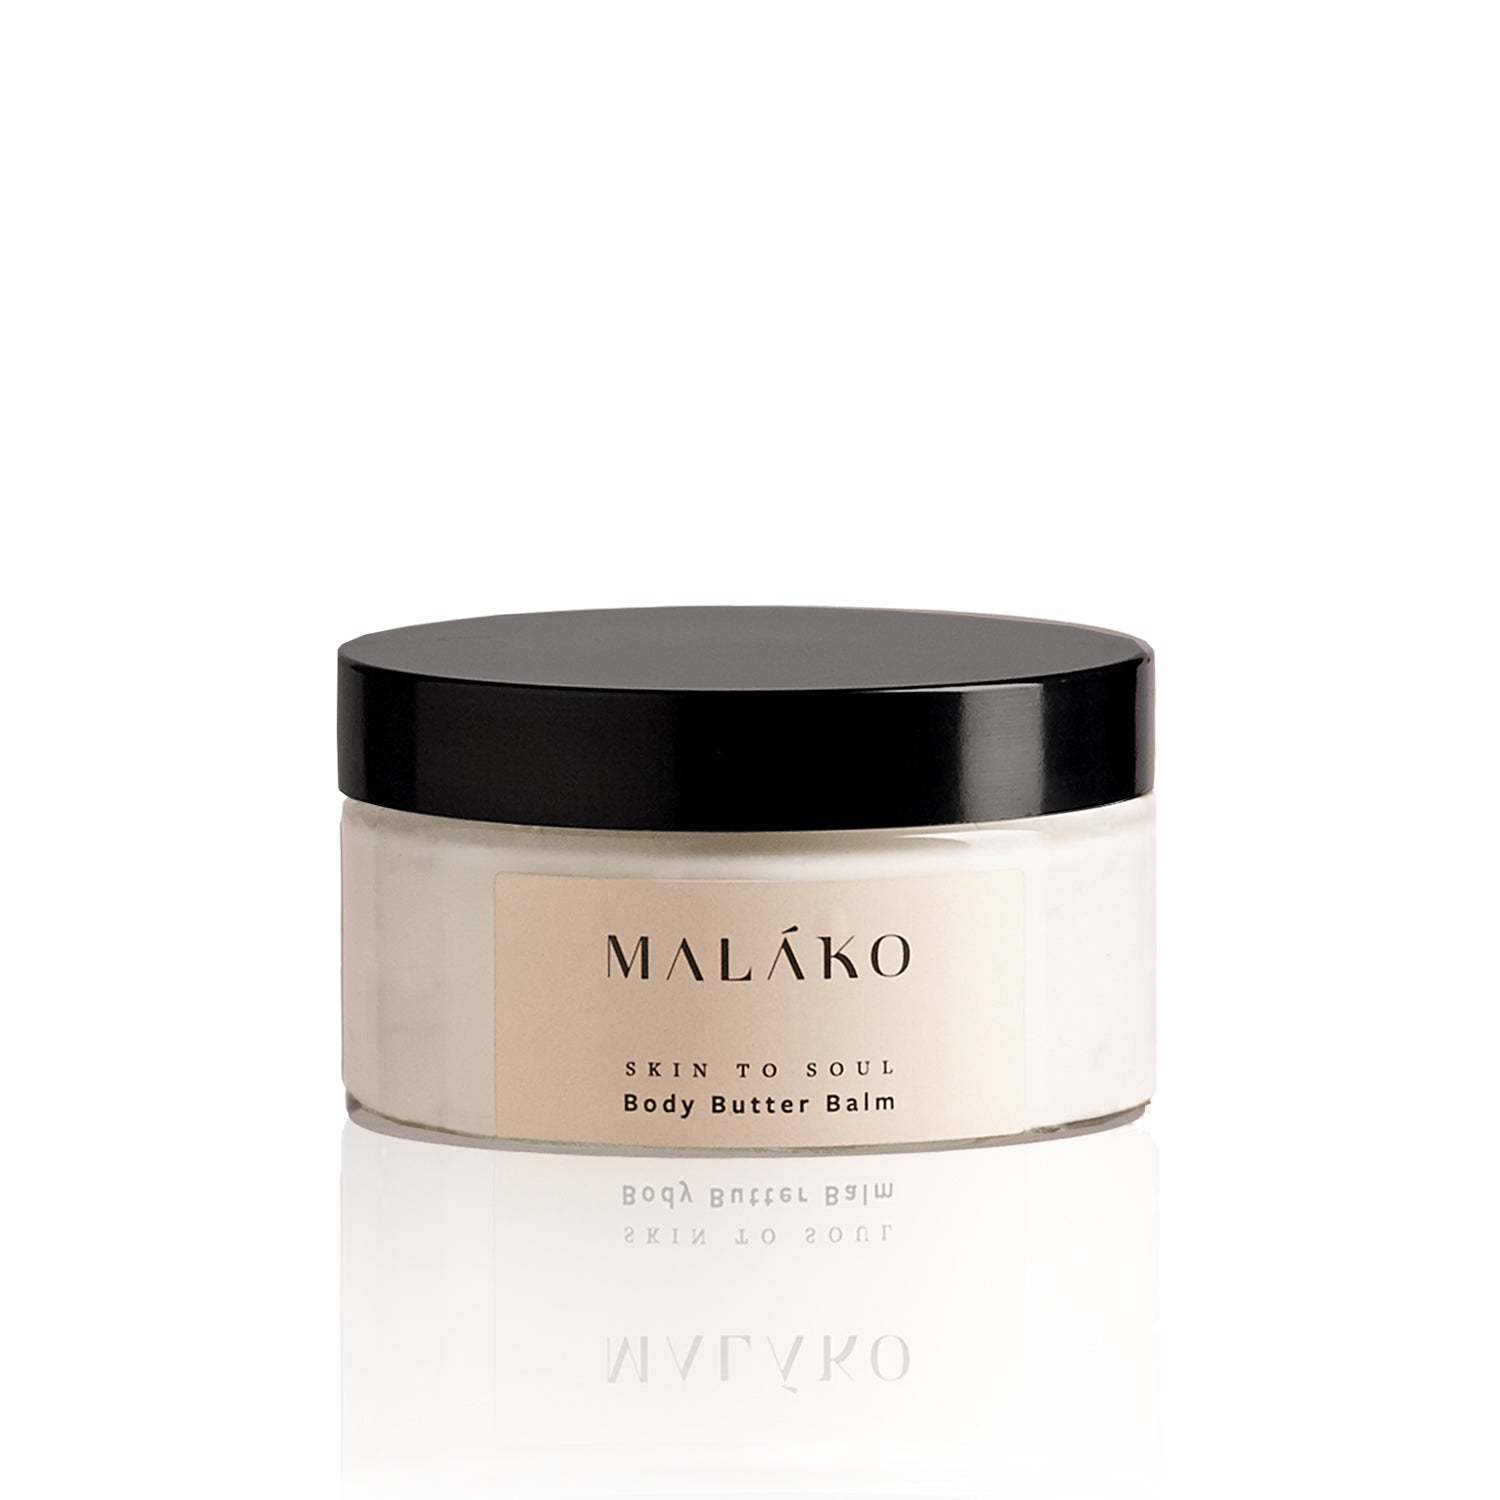 Skin to soul body butter by Malako. Featured in Wallpaper Magazine